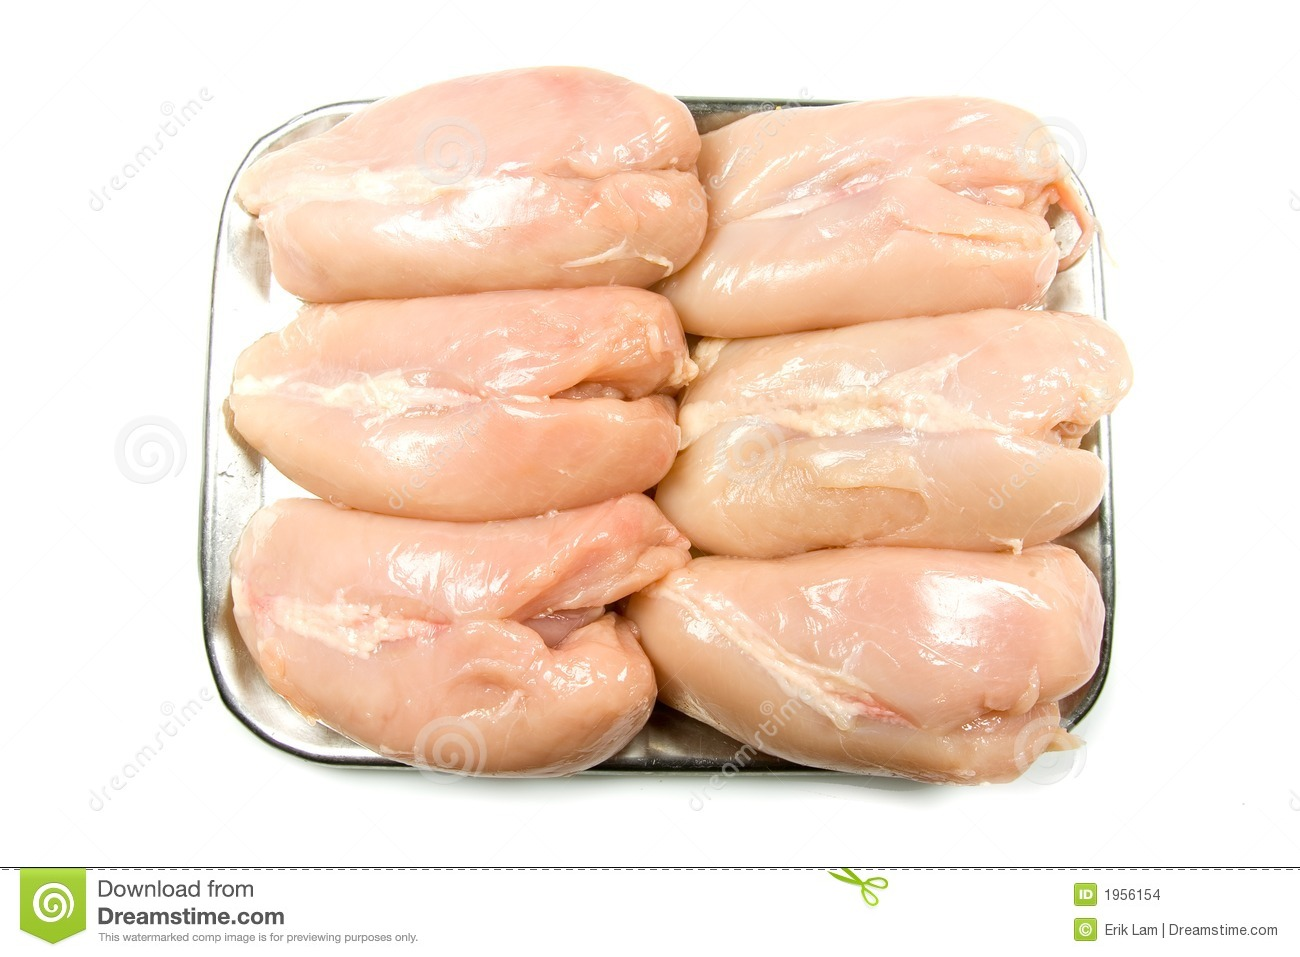 Calories chicken breast no skin